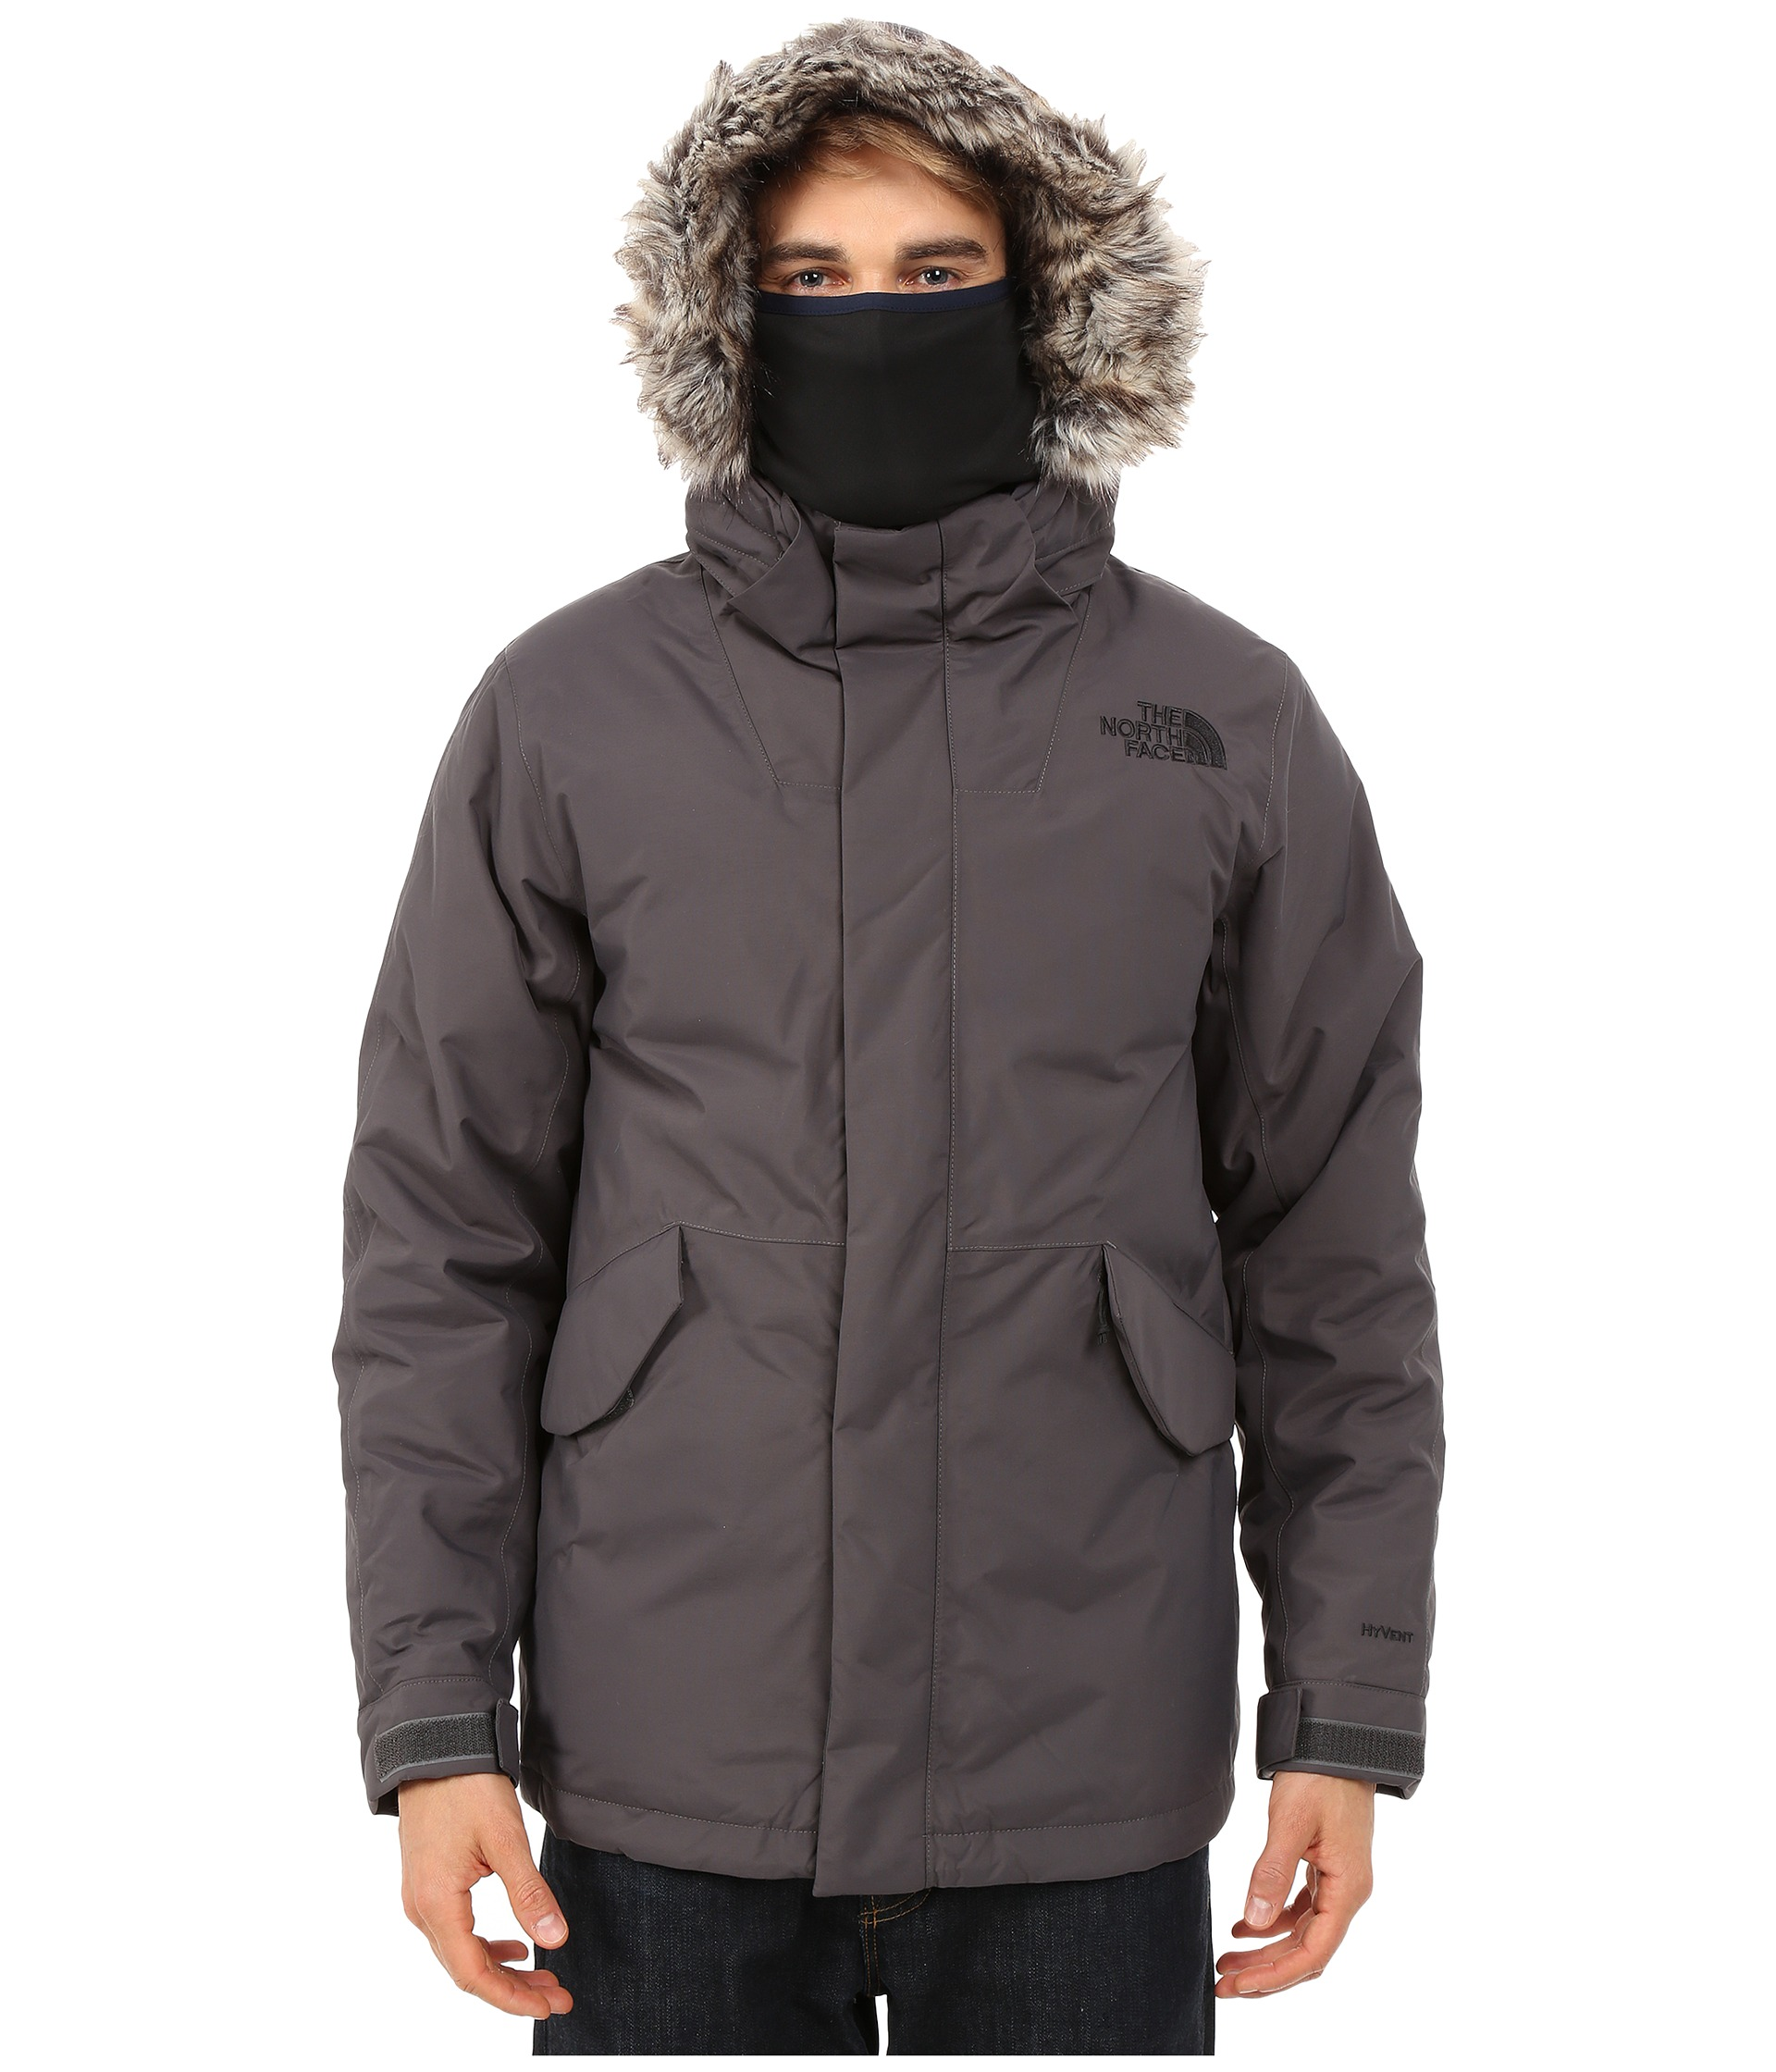 north face 550 down jacket temperature rating northfacewholesale. Black Bedroom Furniture Sets. Home Design Ideas